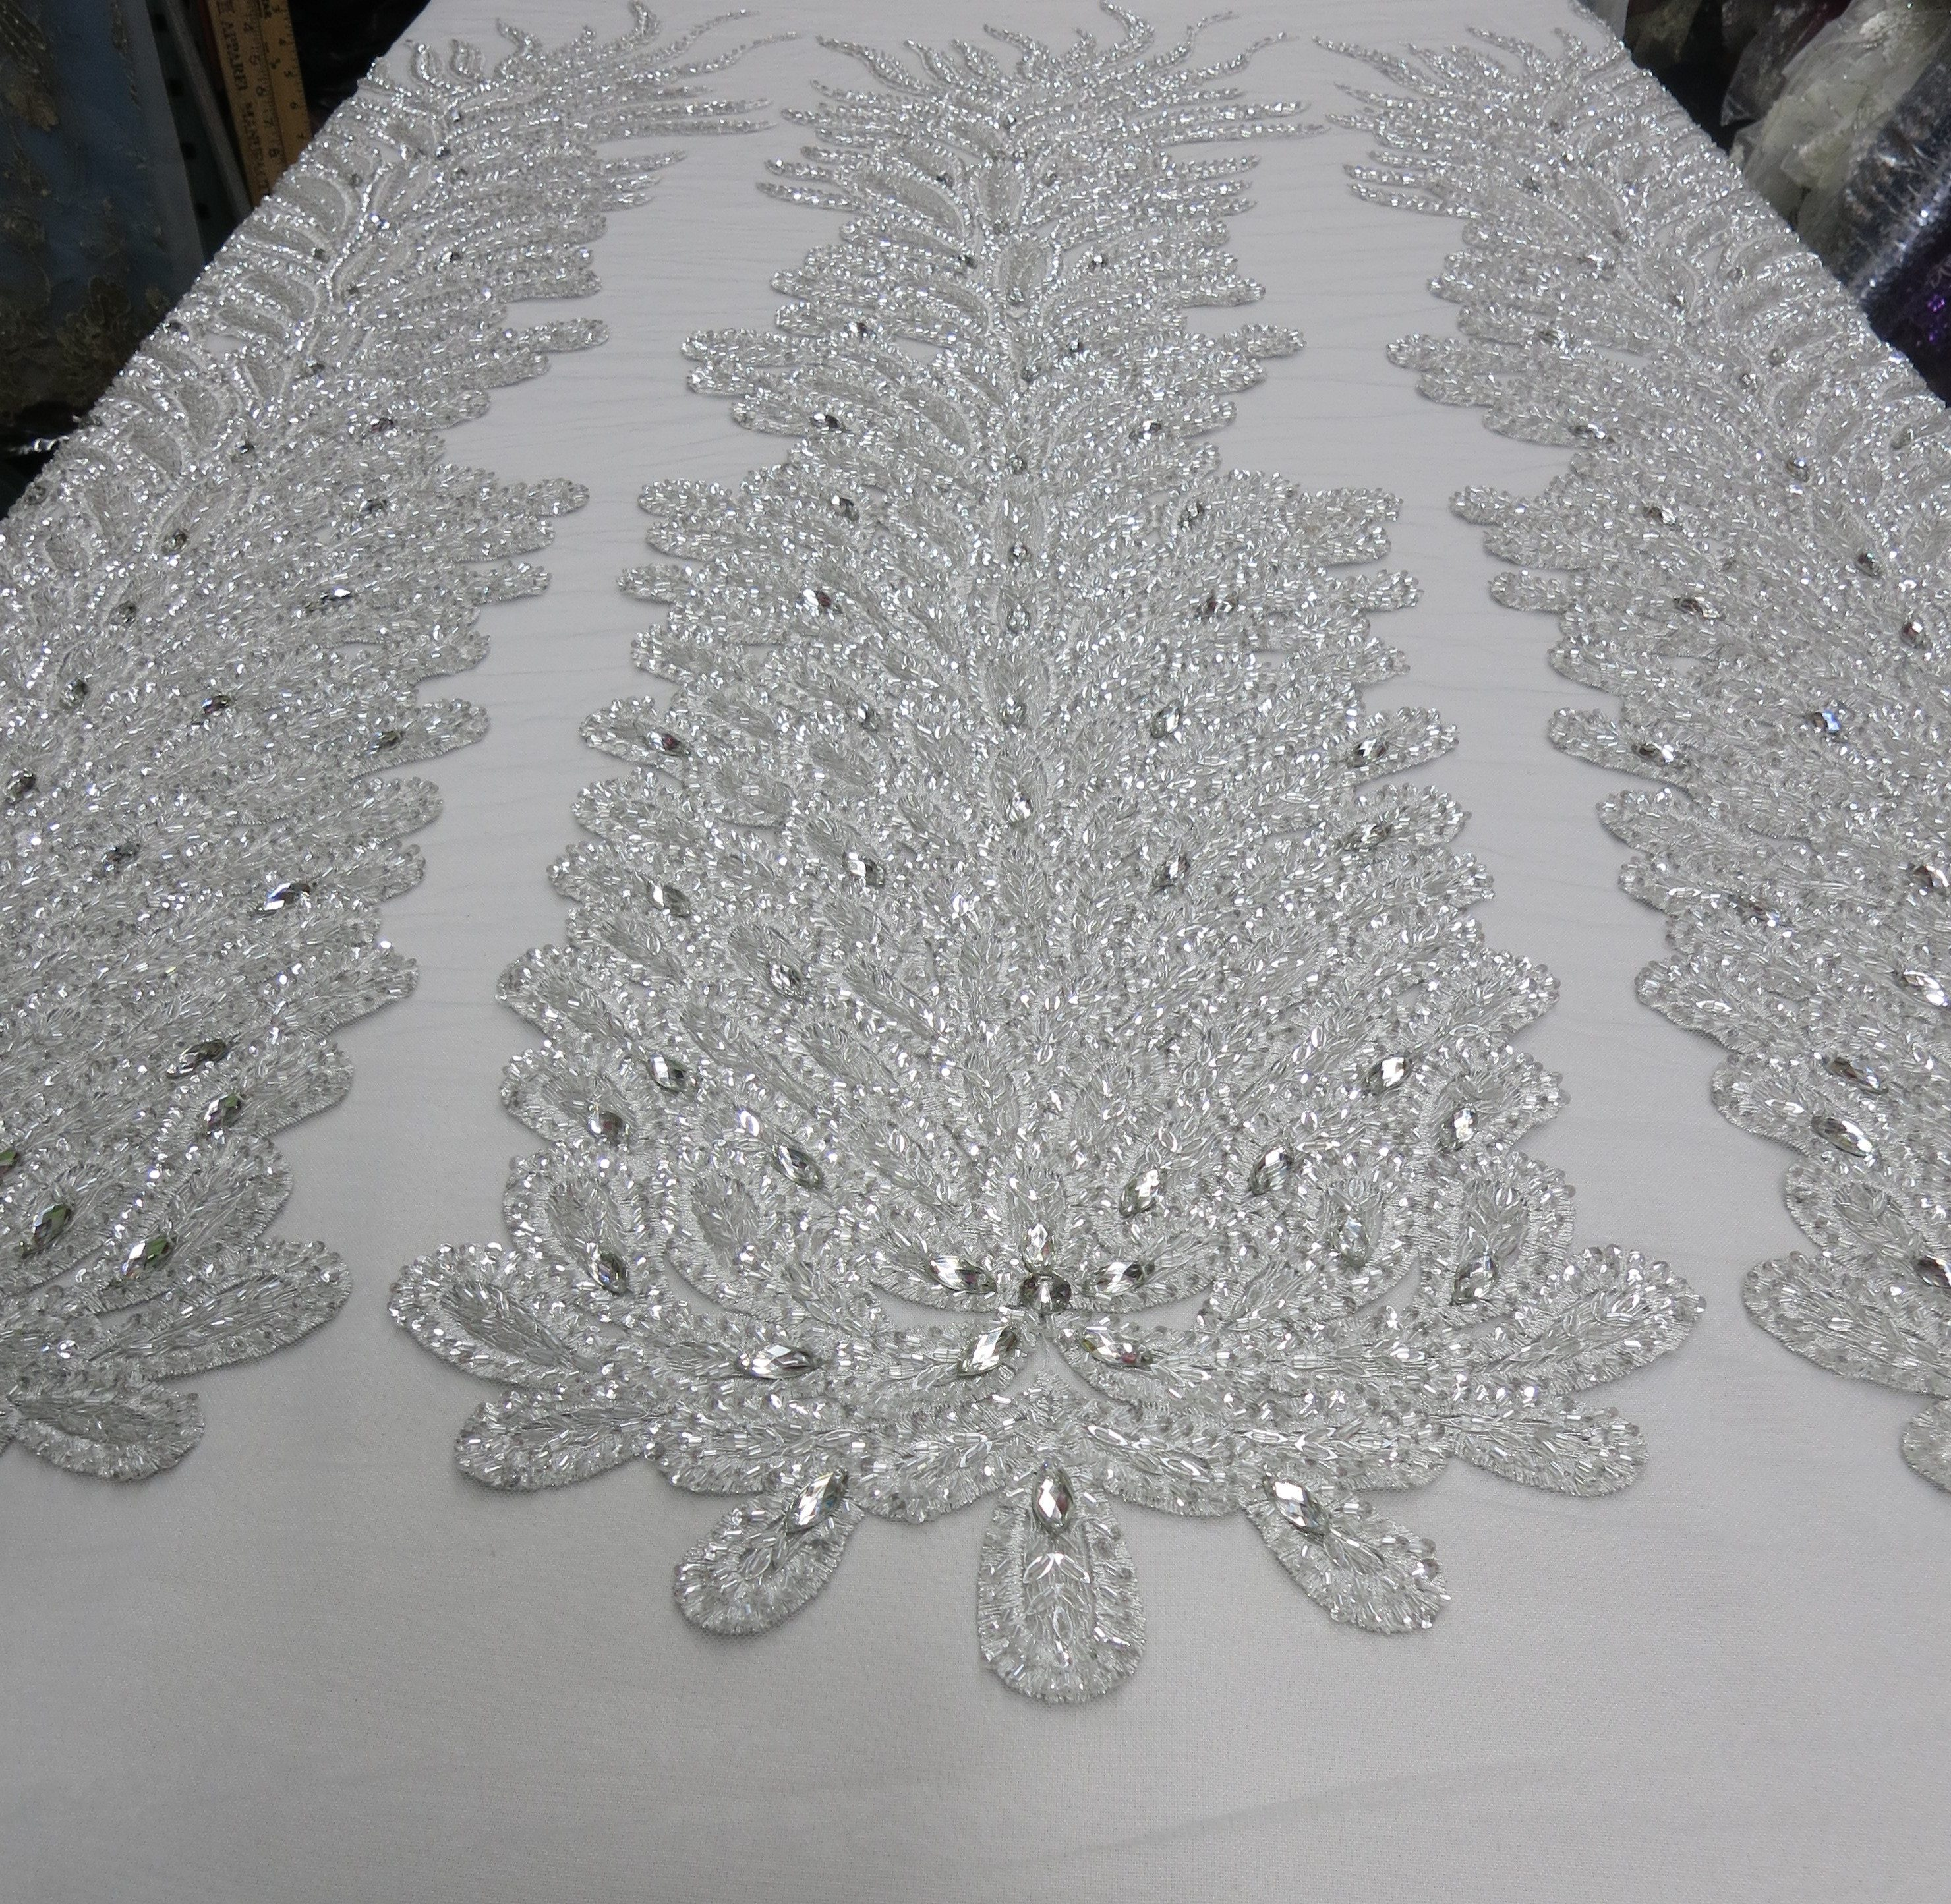 Silver Embroidered Beaded Lace Mesh Fabric with Crystal Beads